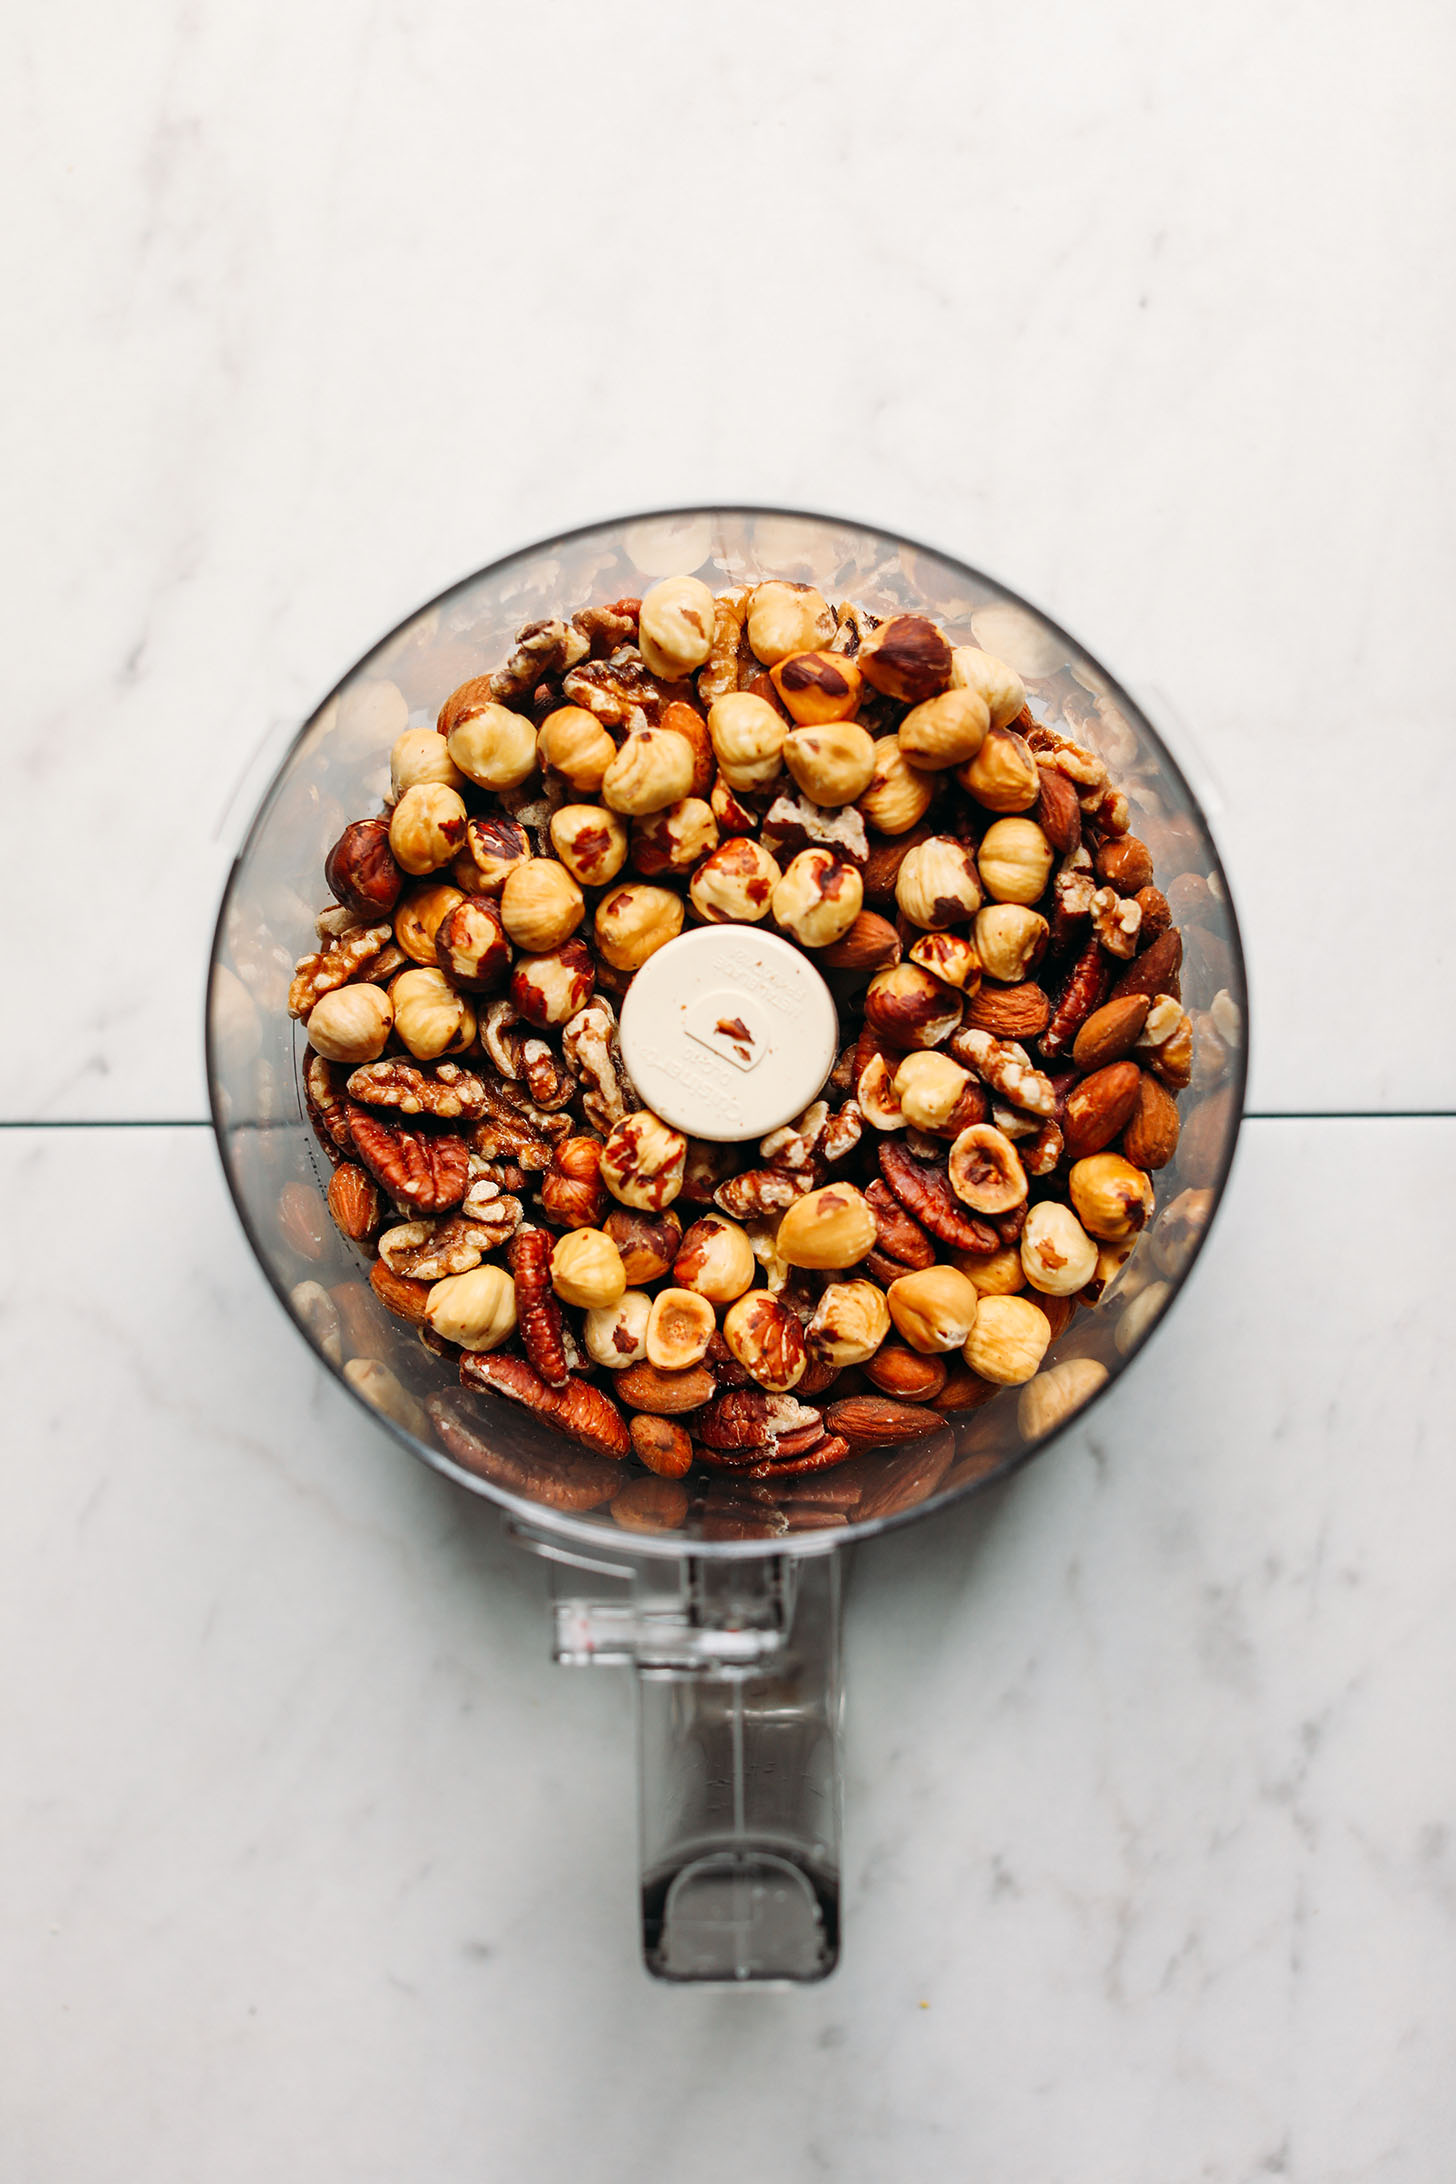 Roasted nuts in a food processor for making homemade nut butter